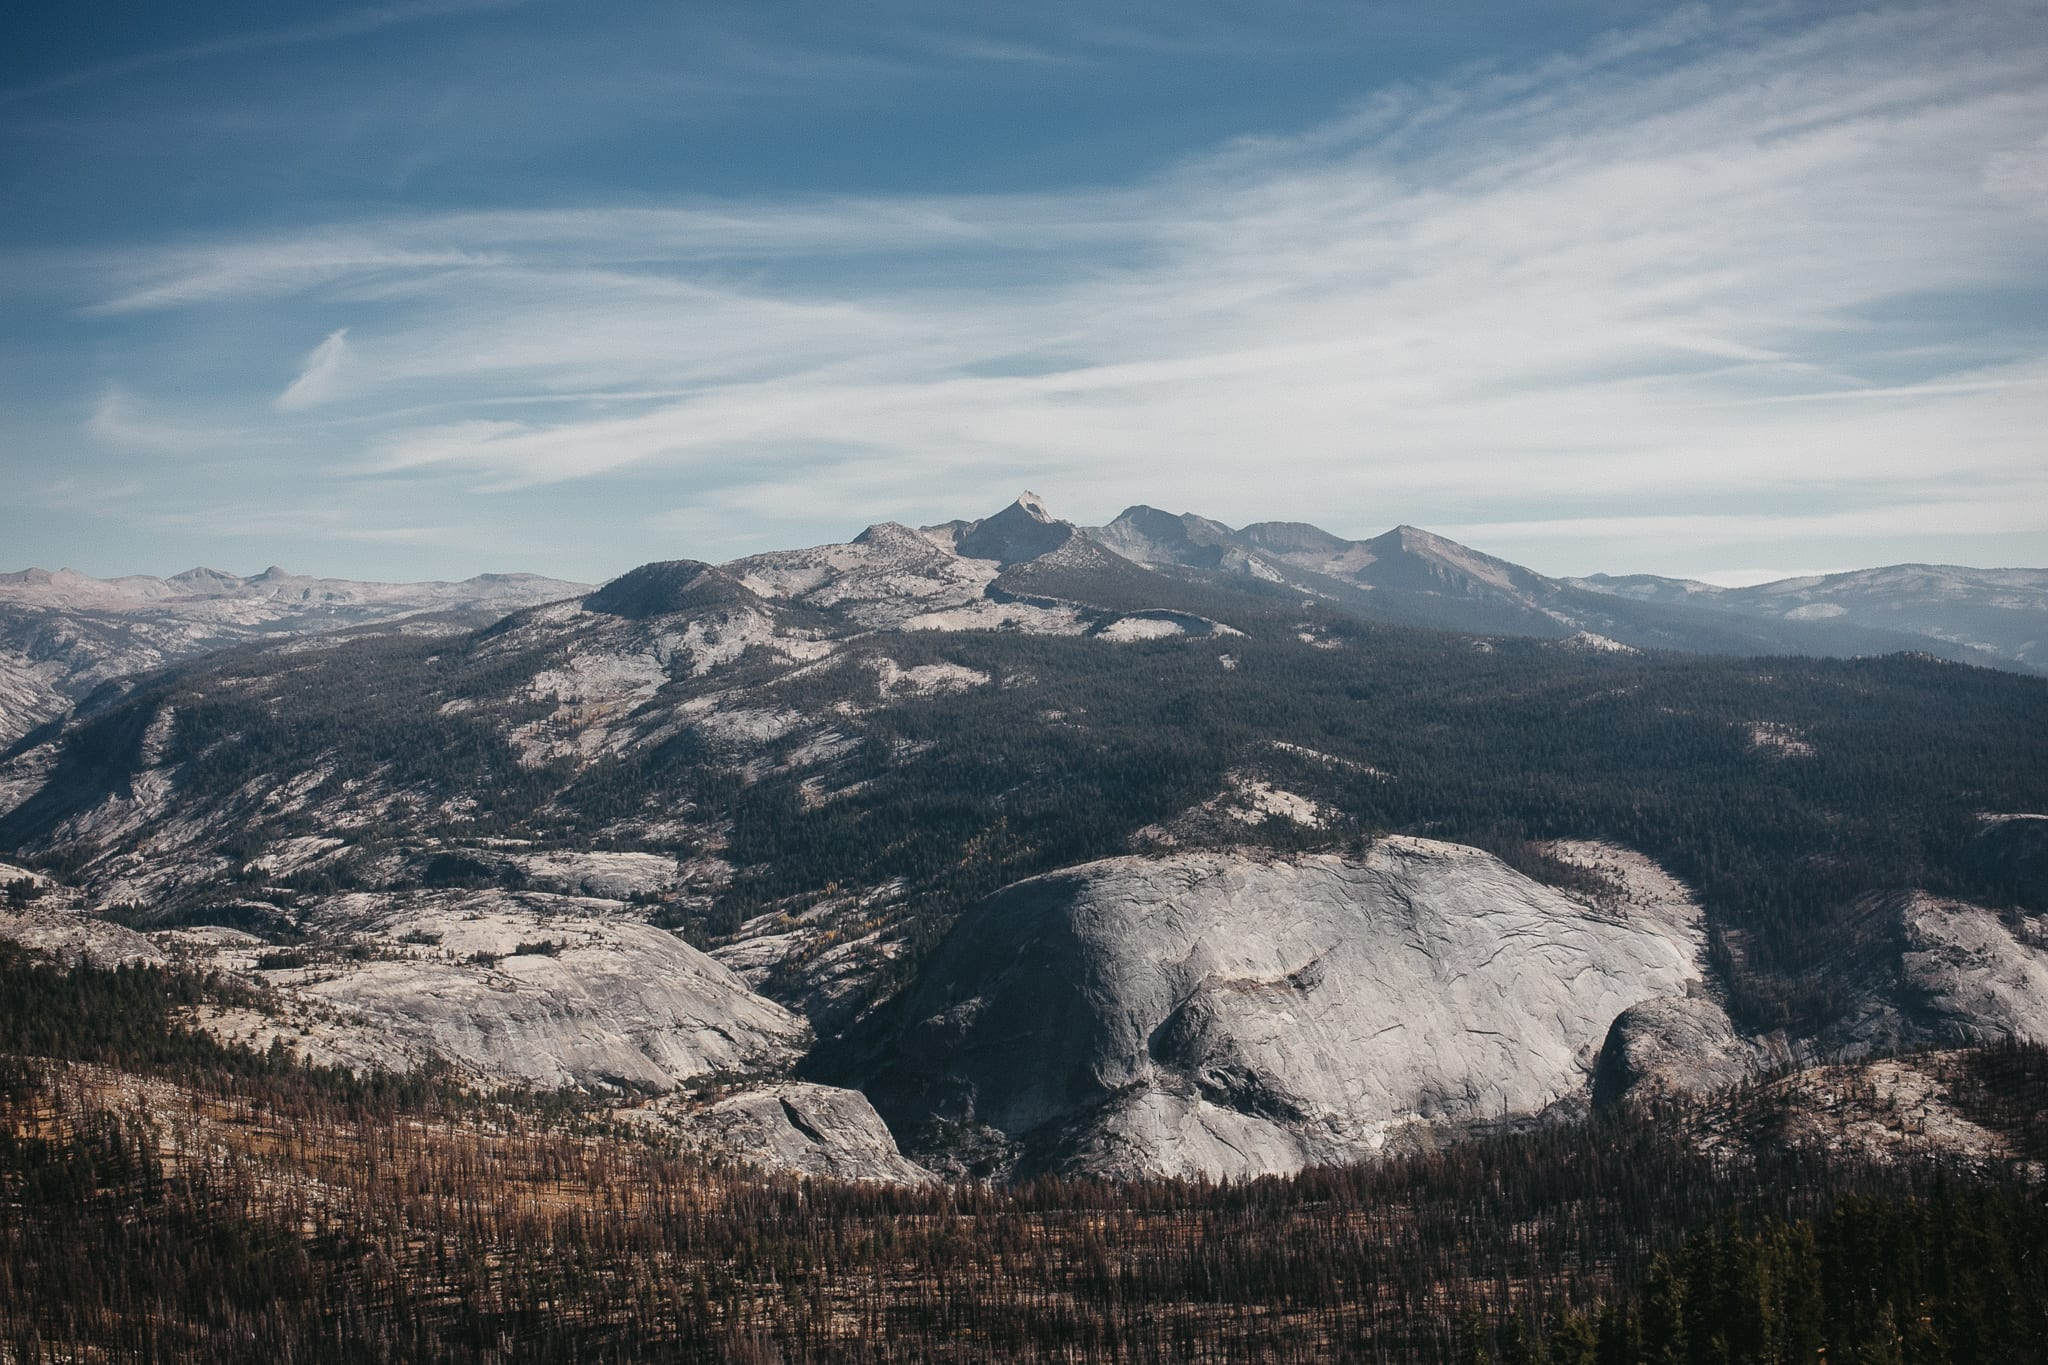 clouds-rest-yosemite-california-engagement-lifestyle-adventure-photographer-9